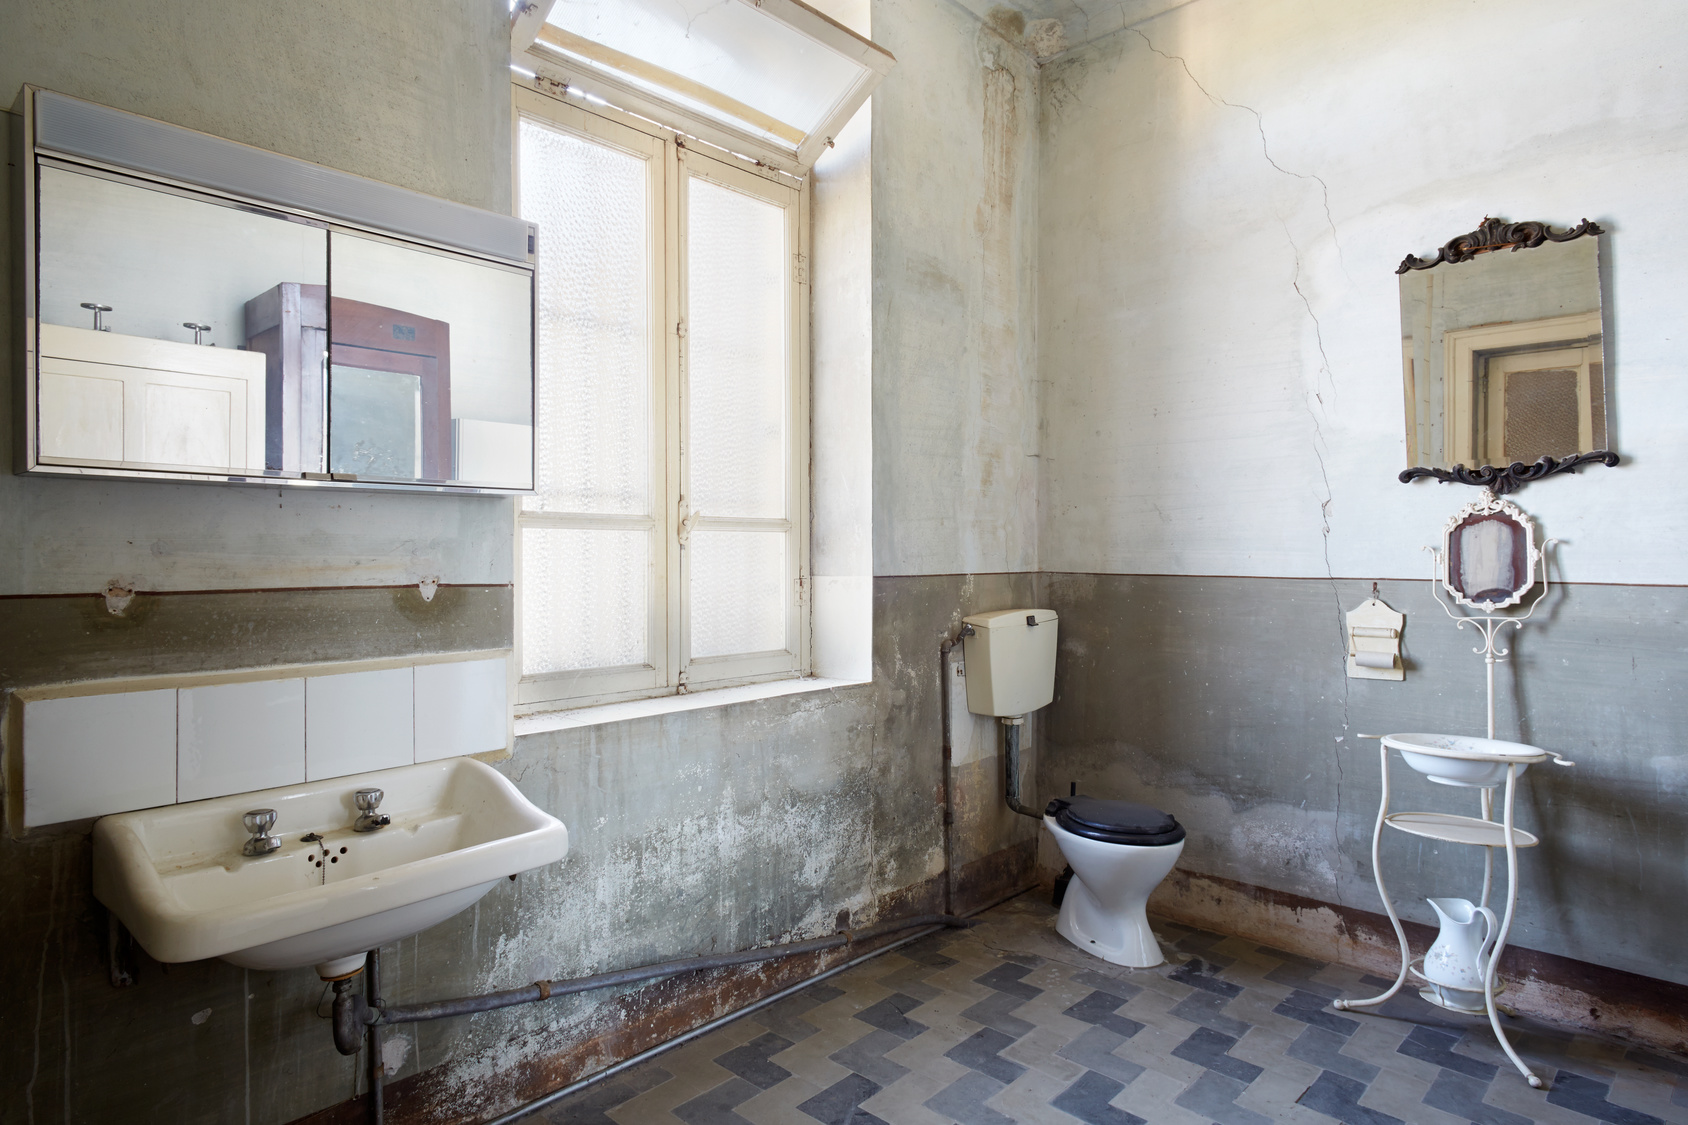 6 Typical Plumbing Issues Found In Older Homes Davis